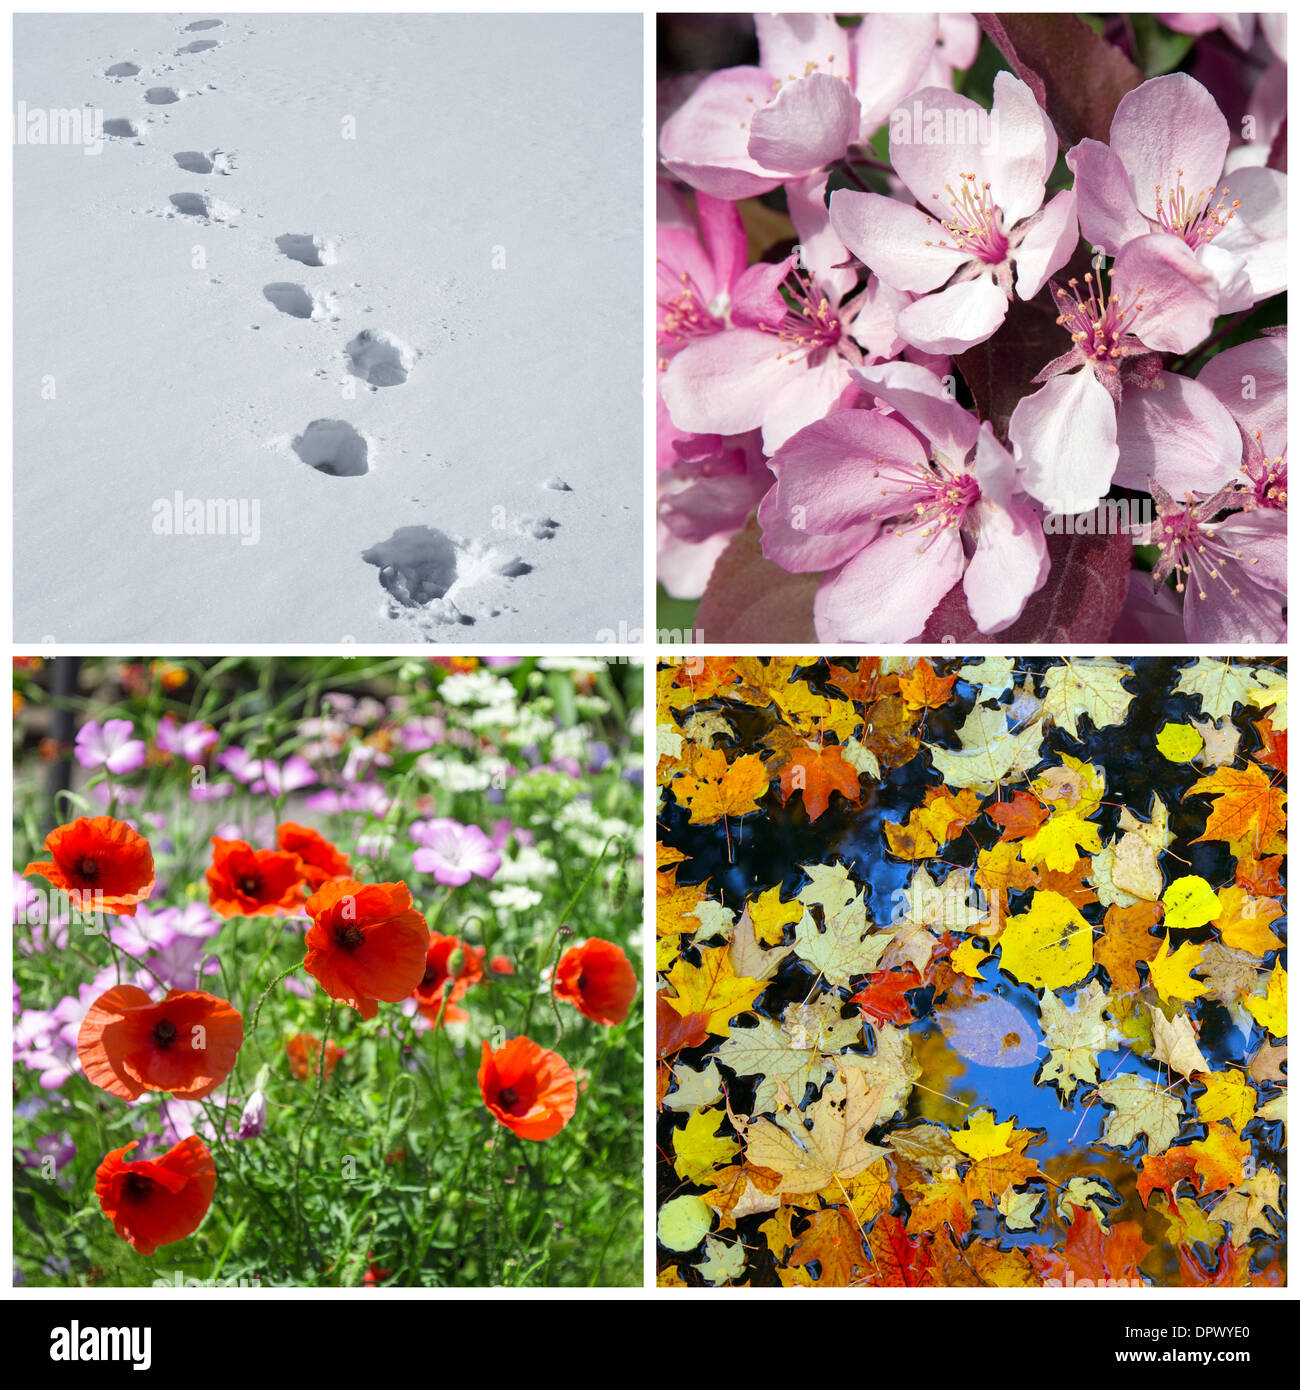 Four seasons. Nature in winter, spring, summer and autumn. - Stock Image